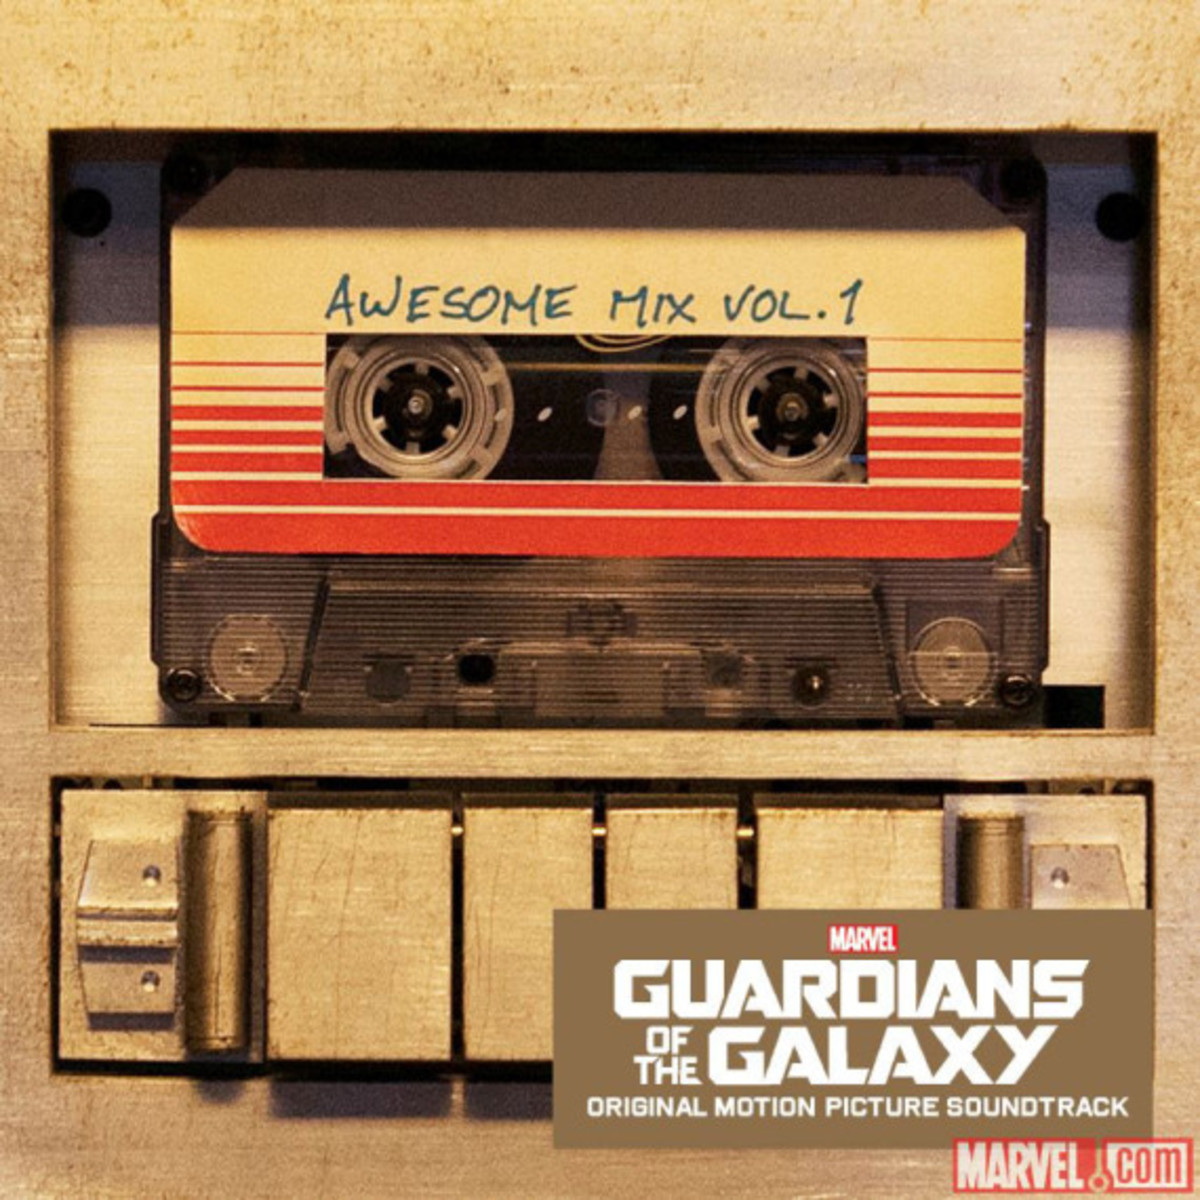 guardians-of-the-galaxy-awesome-mix-vol-1-google-play-01